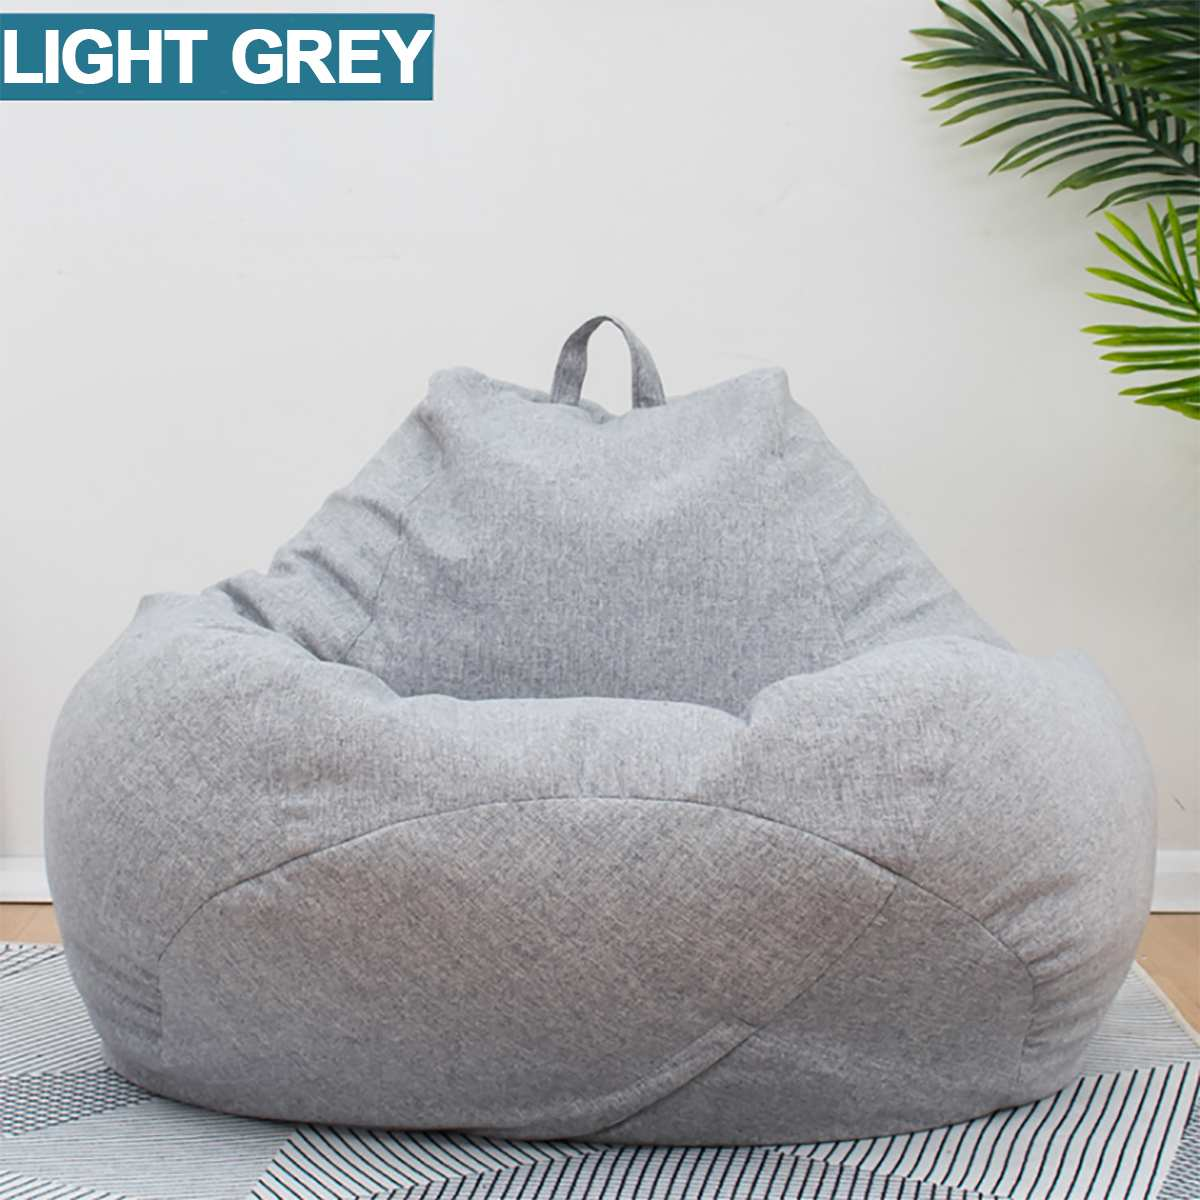 Lazy BeanBag Sofas Cotton Linen Cloth Lounger Seat Bean Bag Sofa Cover Chairs Pouf Puff Couch Tatami Living Room Furniture